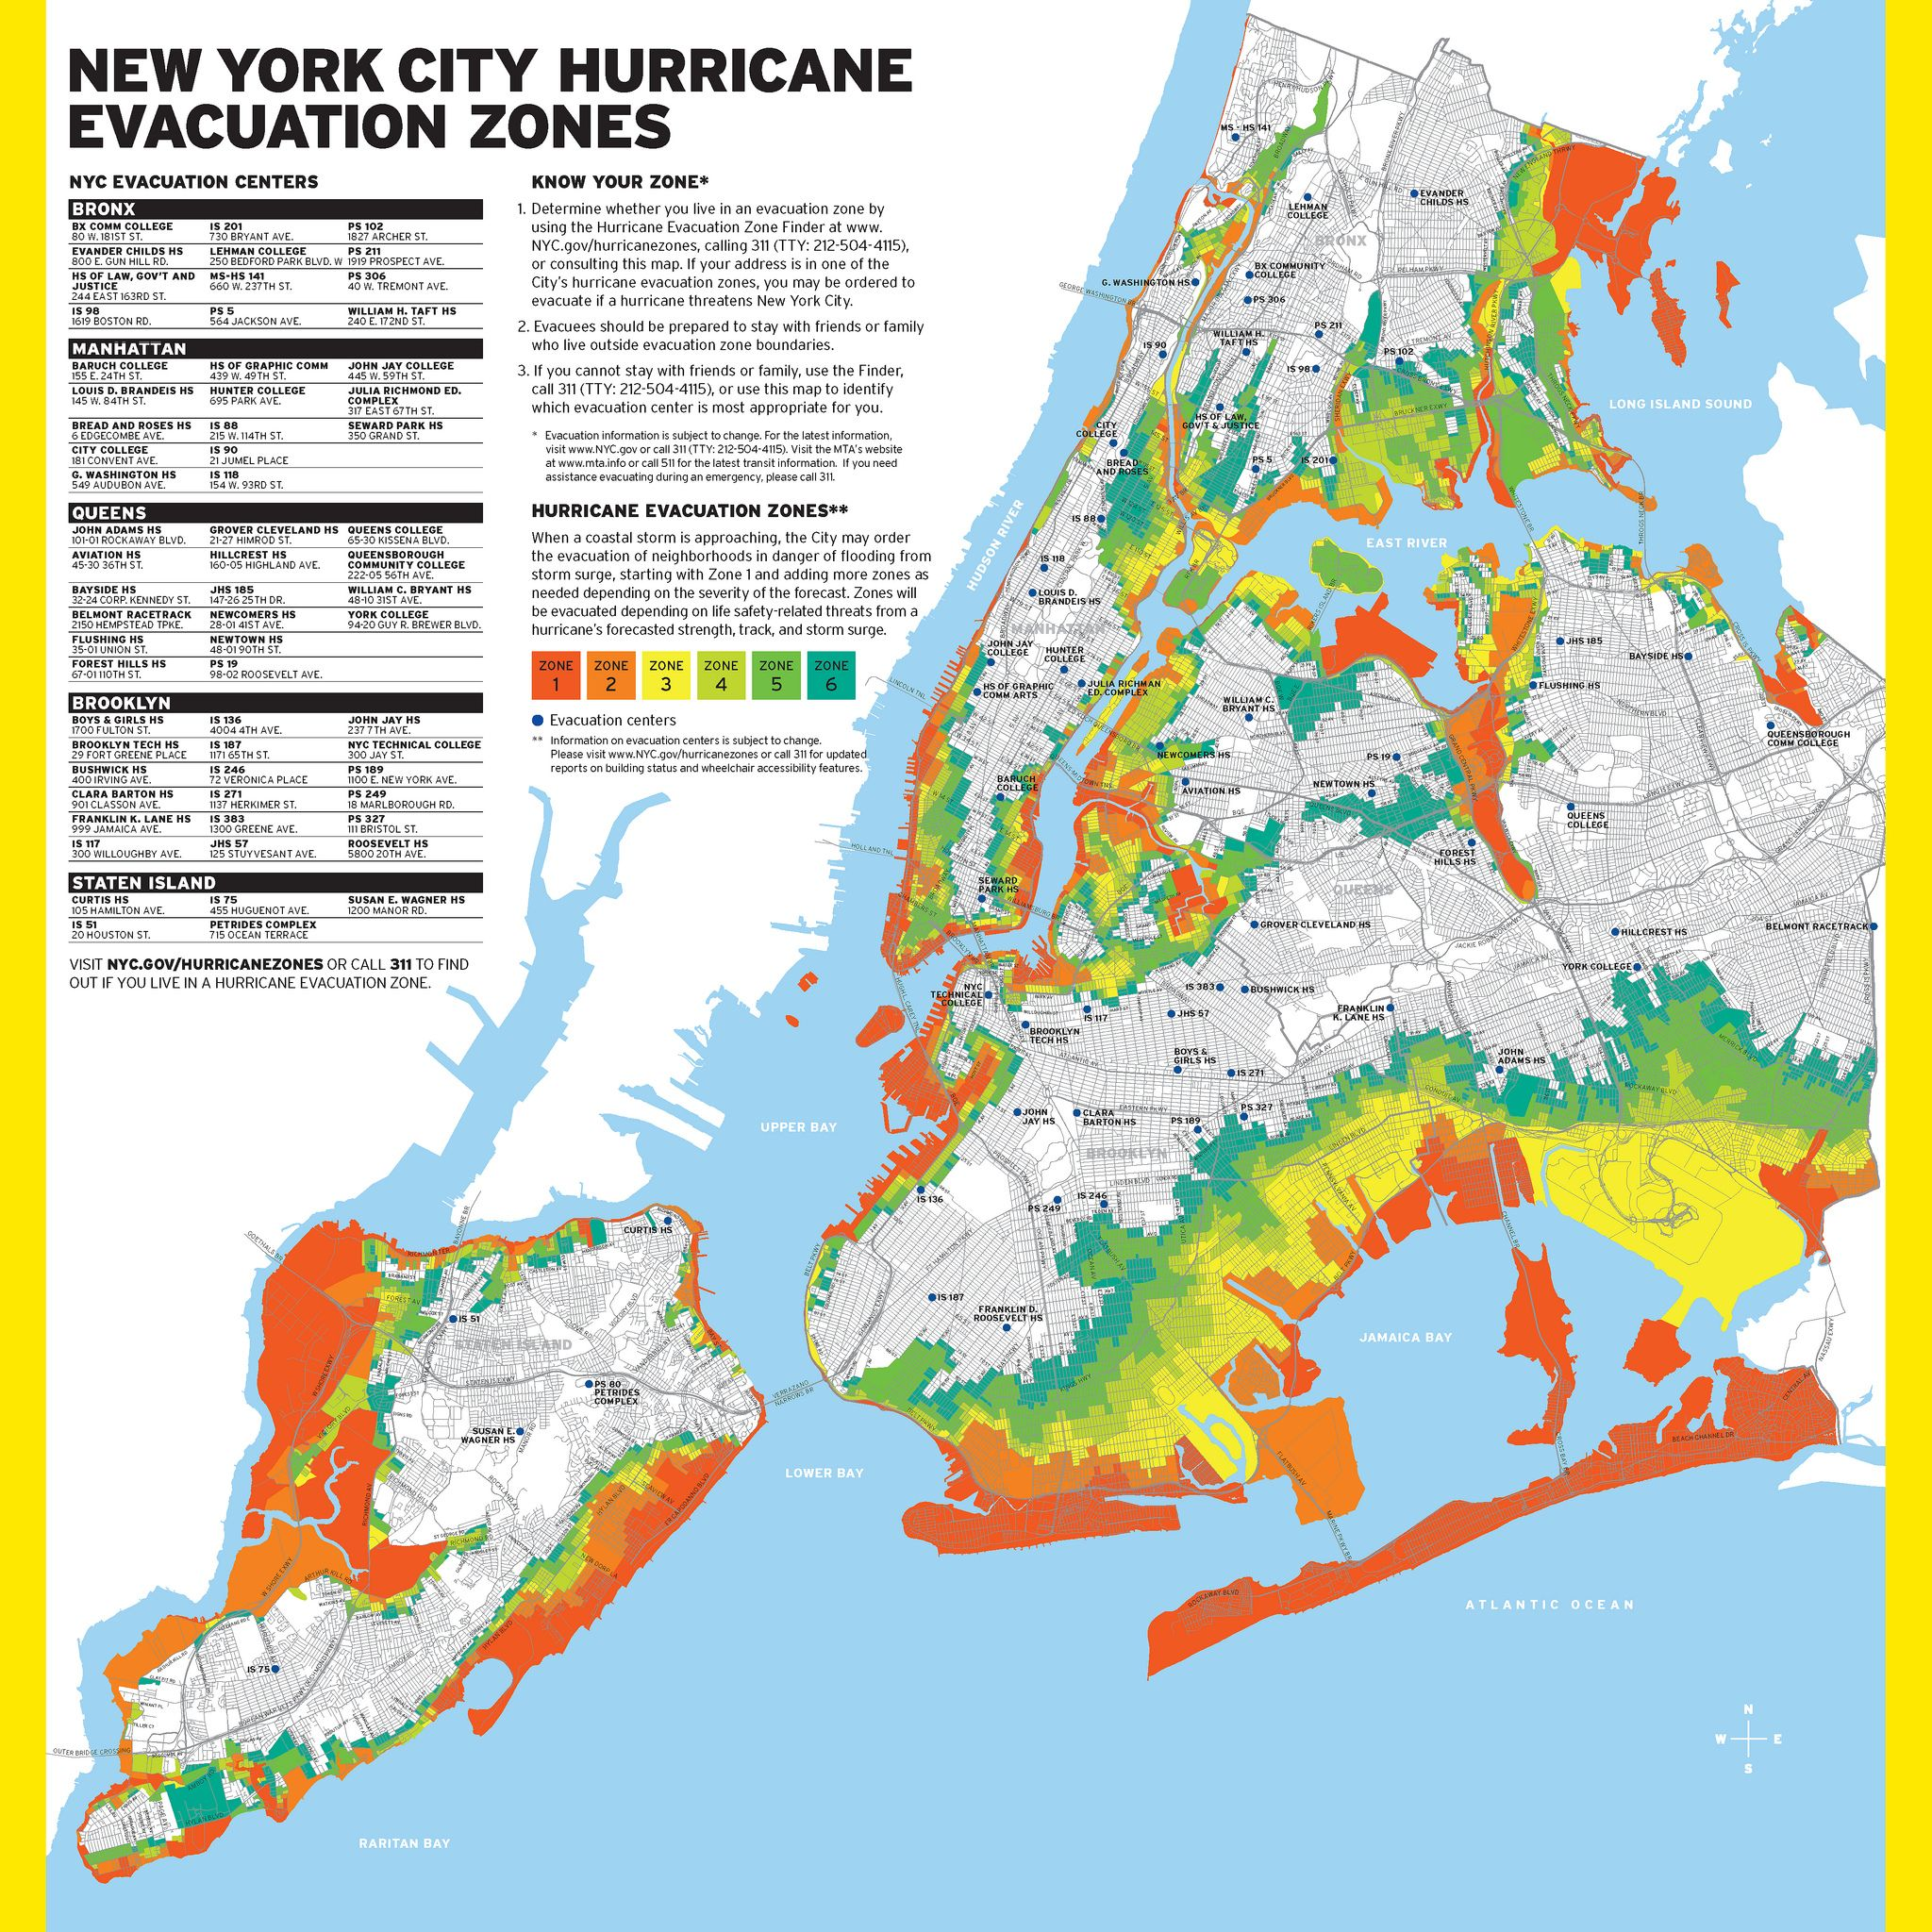 New York City Hurricane Evacuation Zones Flood Zone Hurricane